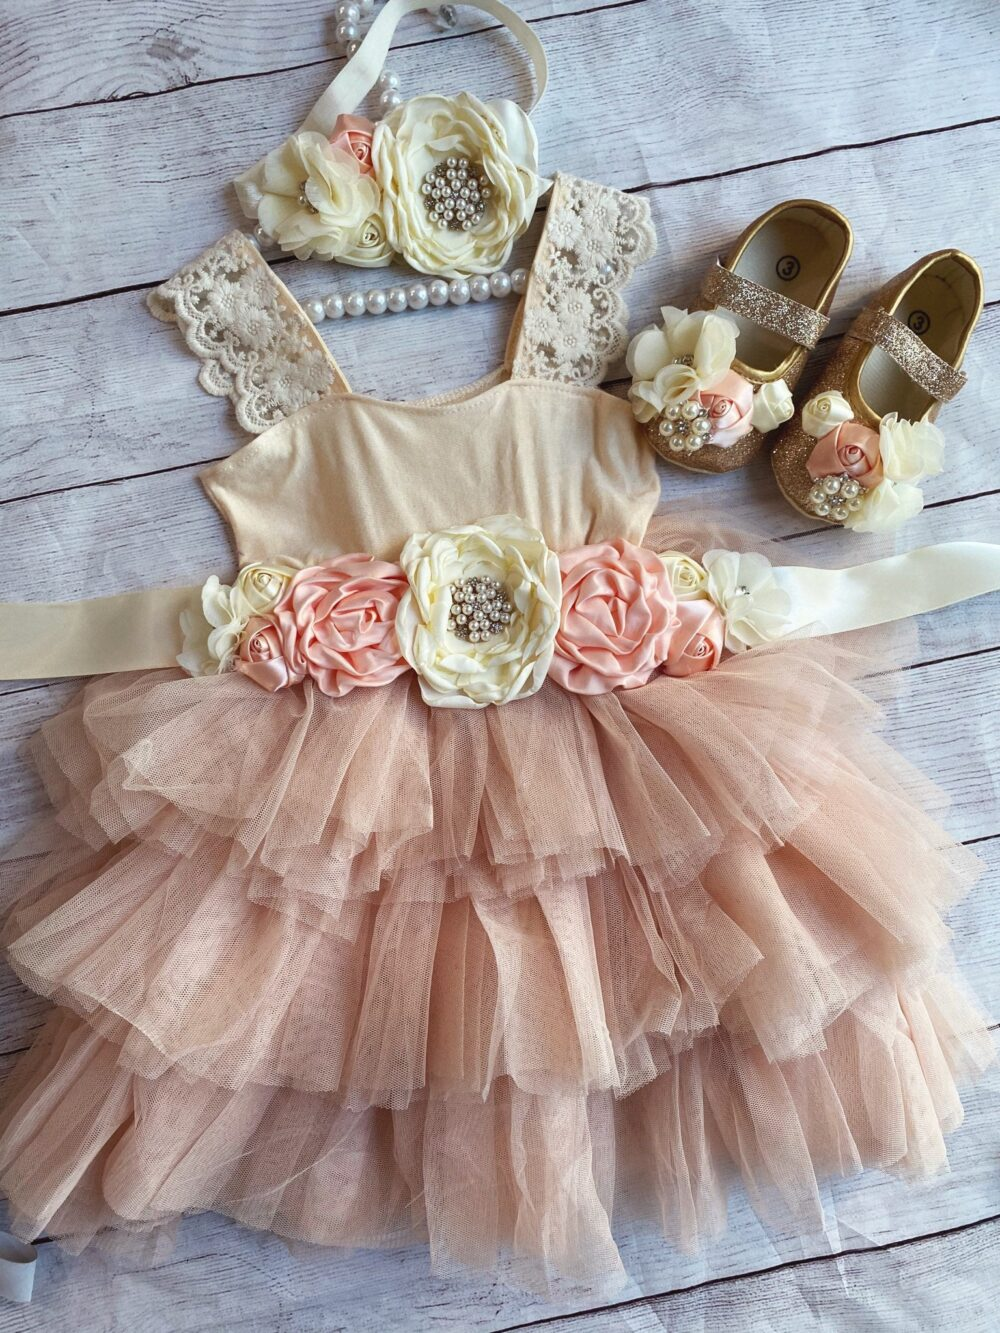 Champagne Flower Girl Dress, 1Ers Birthday Lace Top, Baby Toddler Dress, Tulle Tutu Flower Holiday Dress